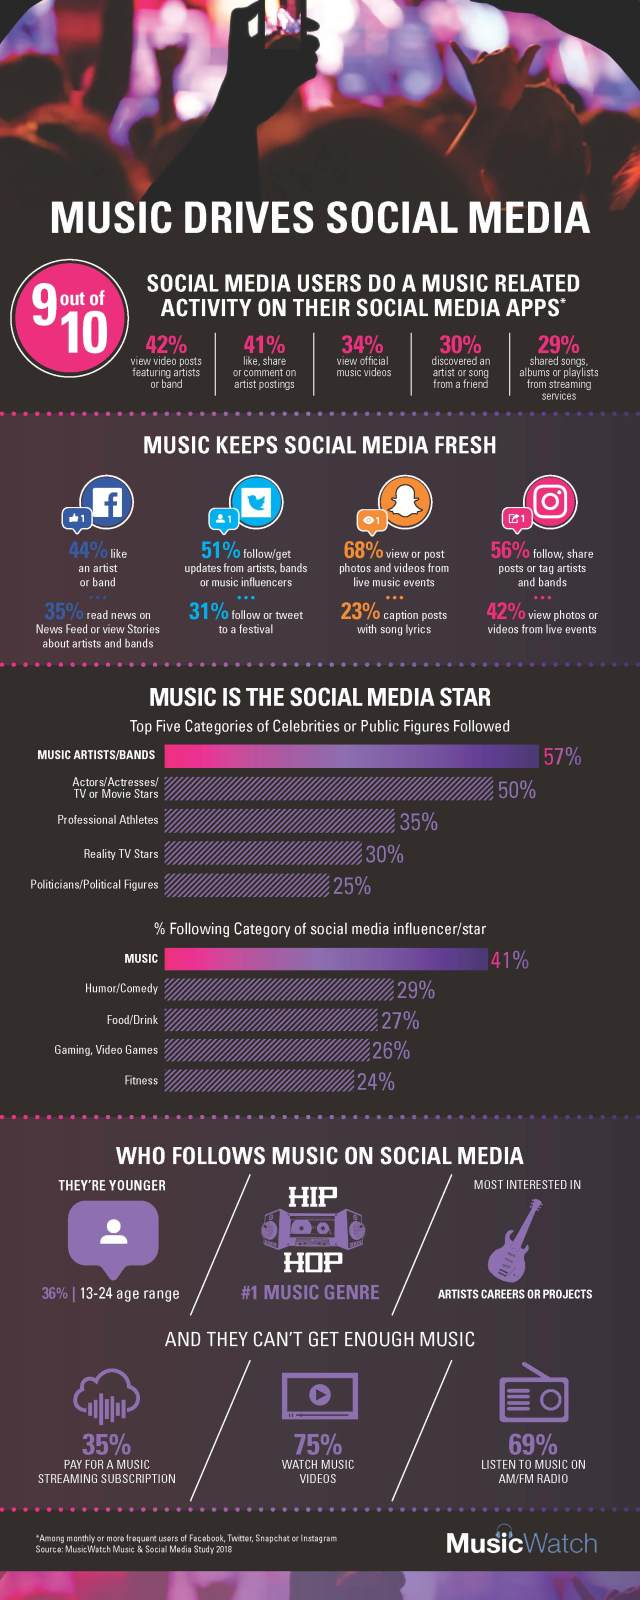 Music Is Scoring Big on Social Media